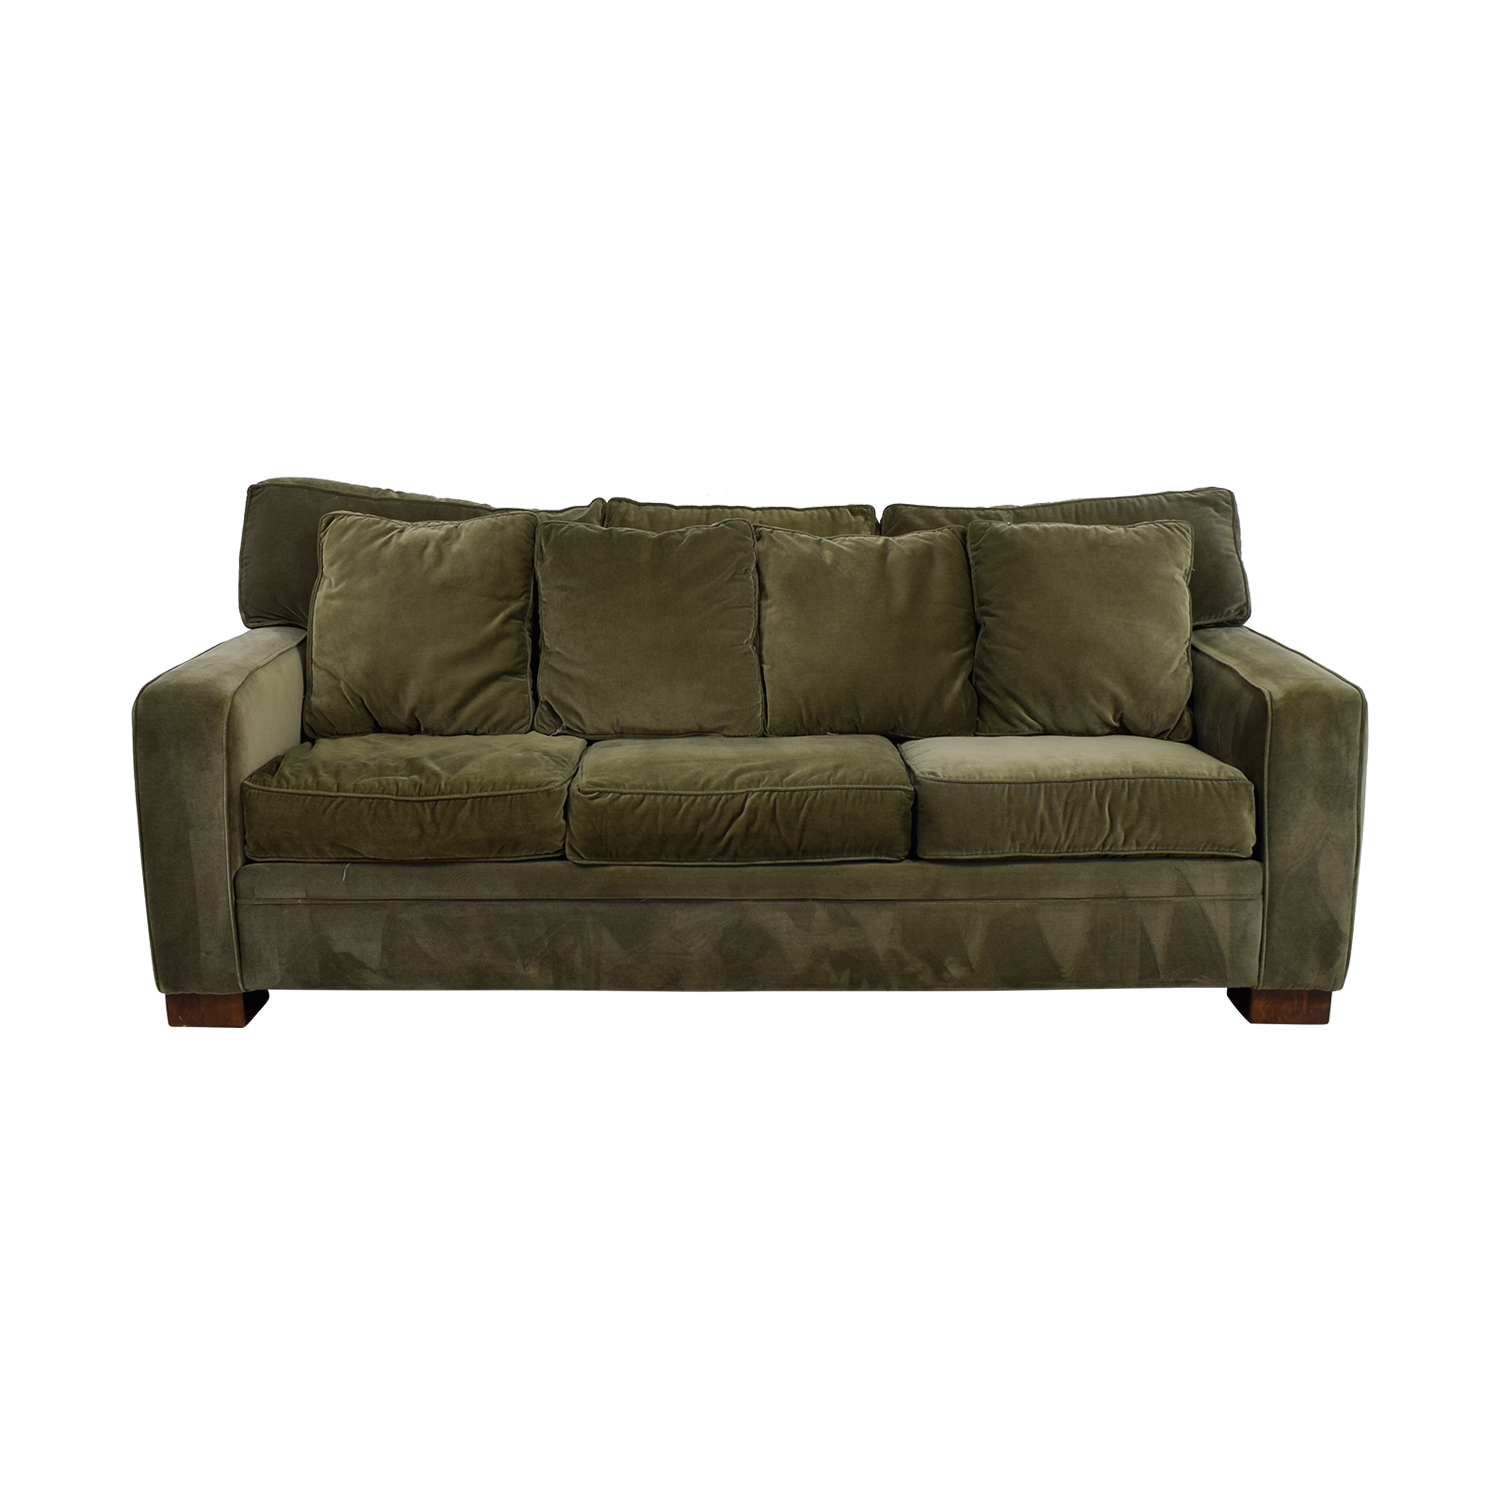 Macys Sage Green Three-Cushion Couch Macys